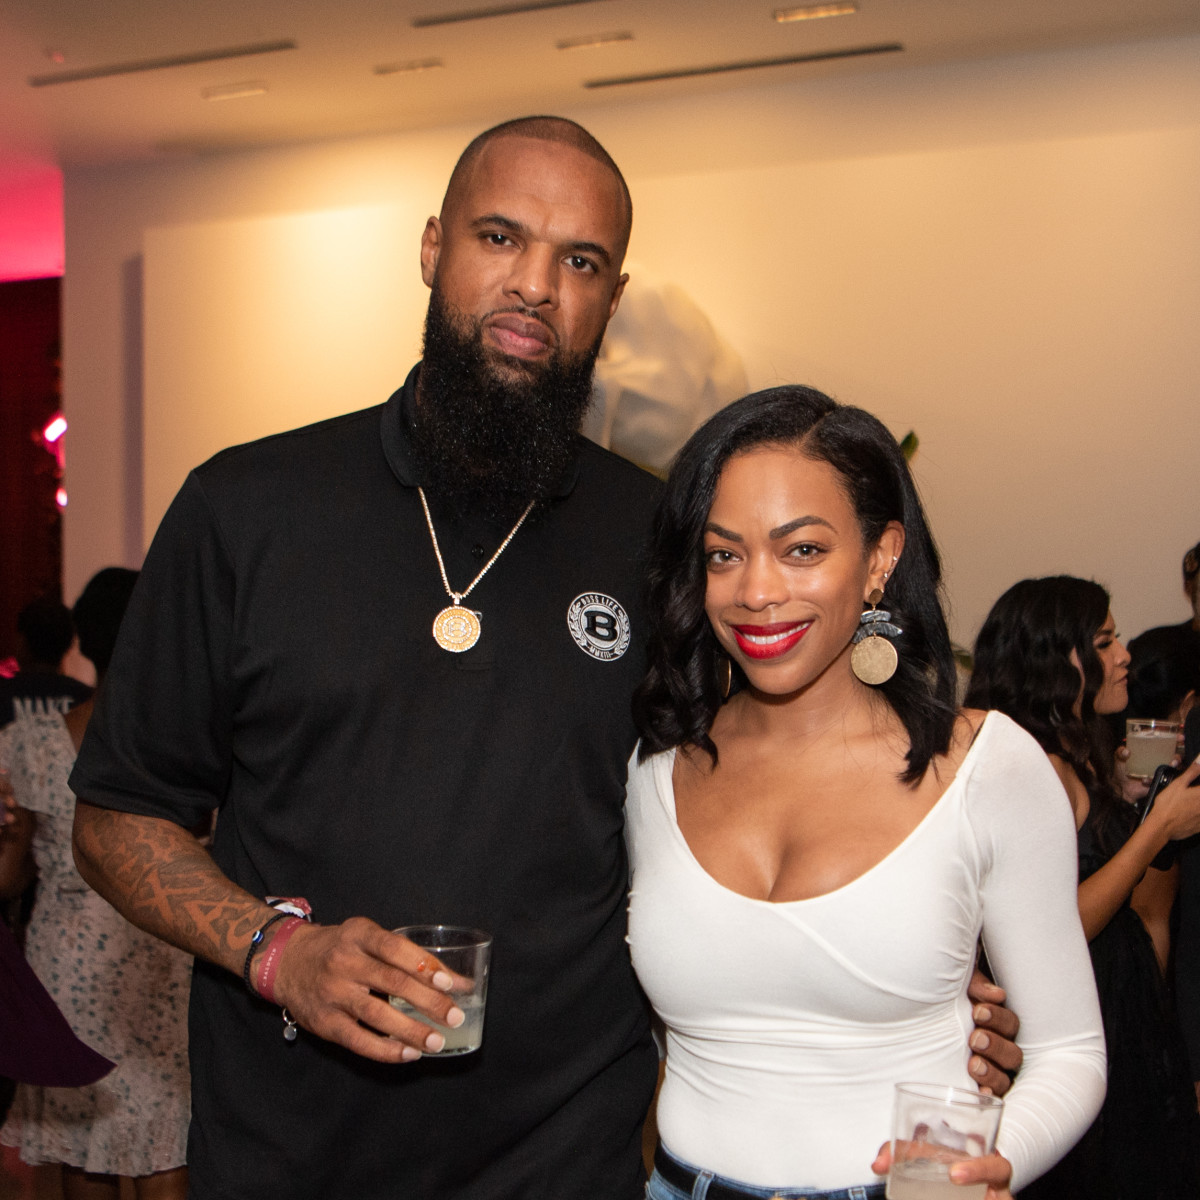 C. Baldwin grand opening 2019 Slim Thug Kayla Jones